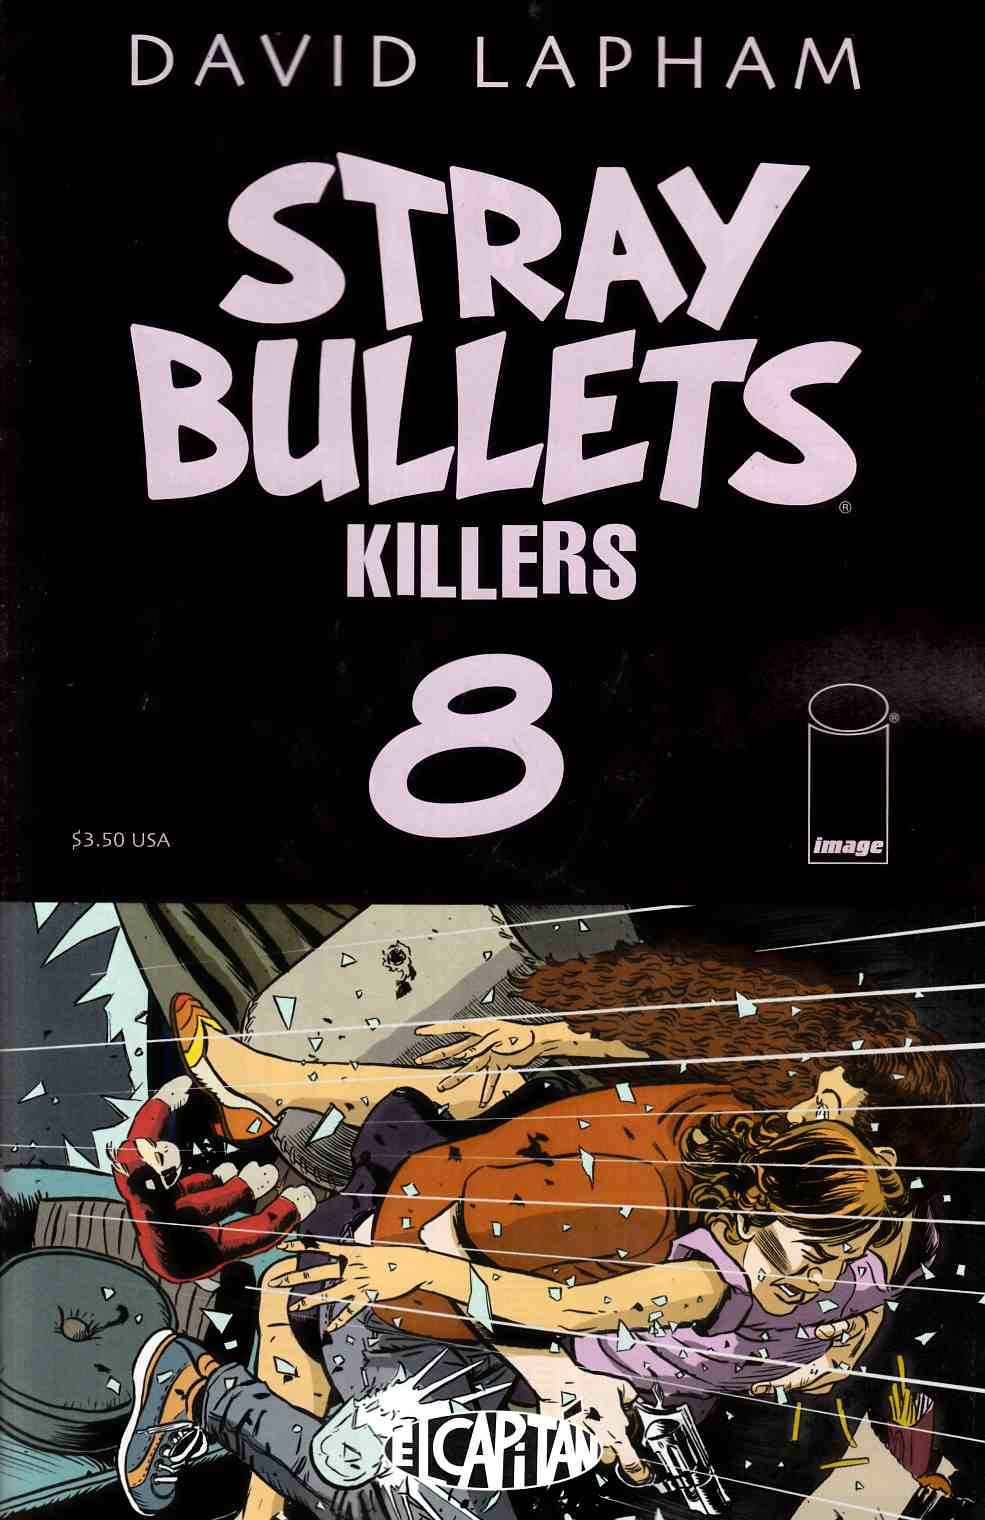 Stray Bullets the Killers #8 [Image Comics] LARGE